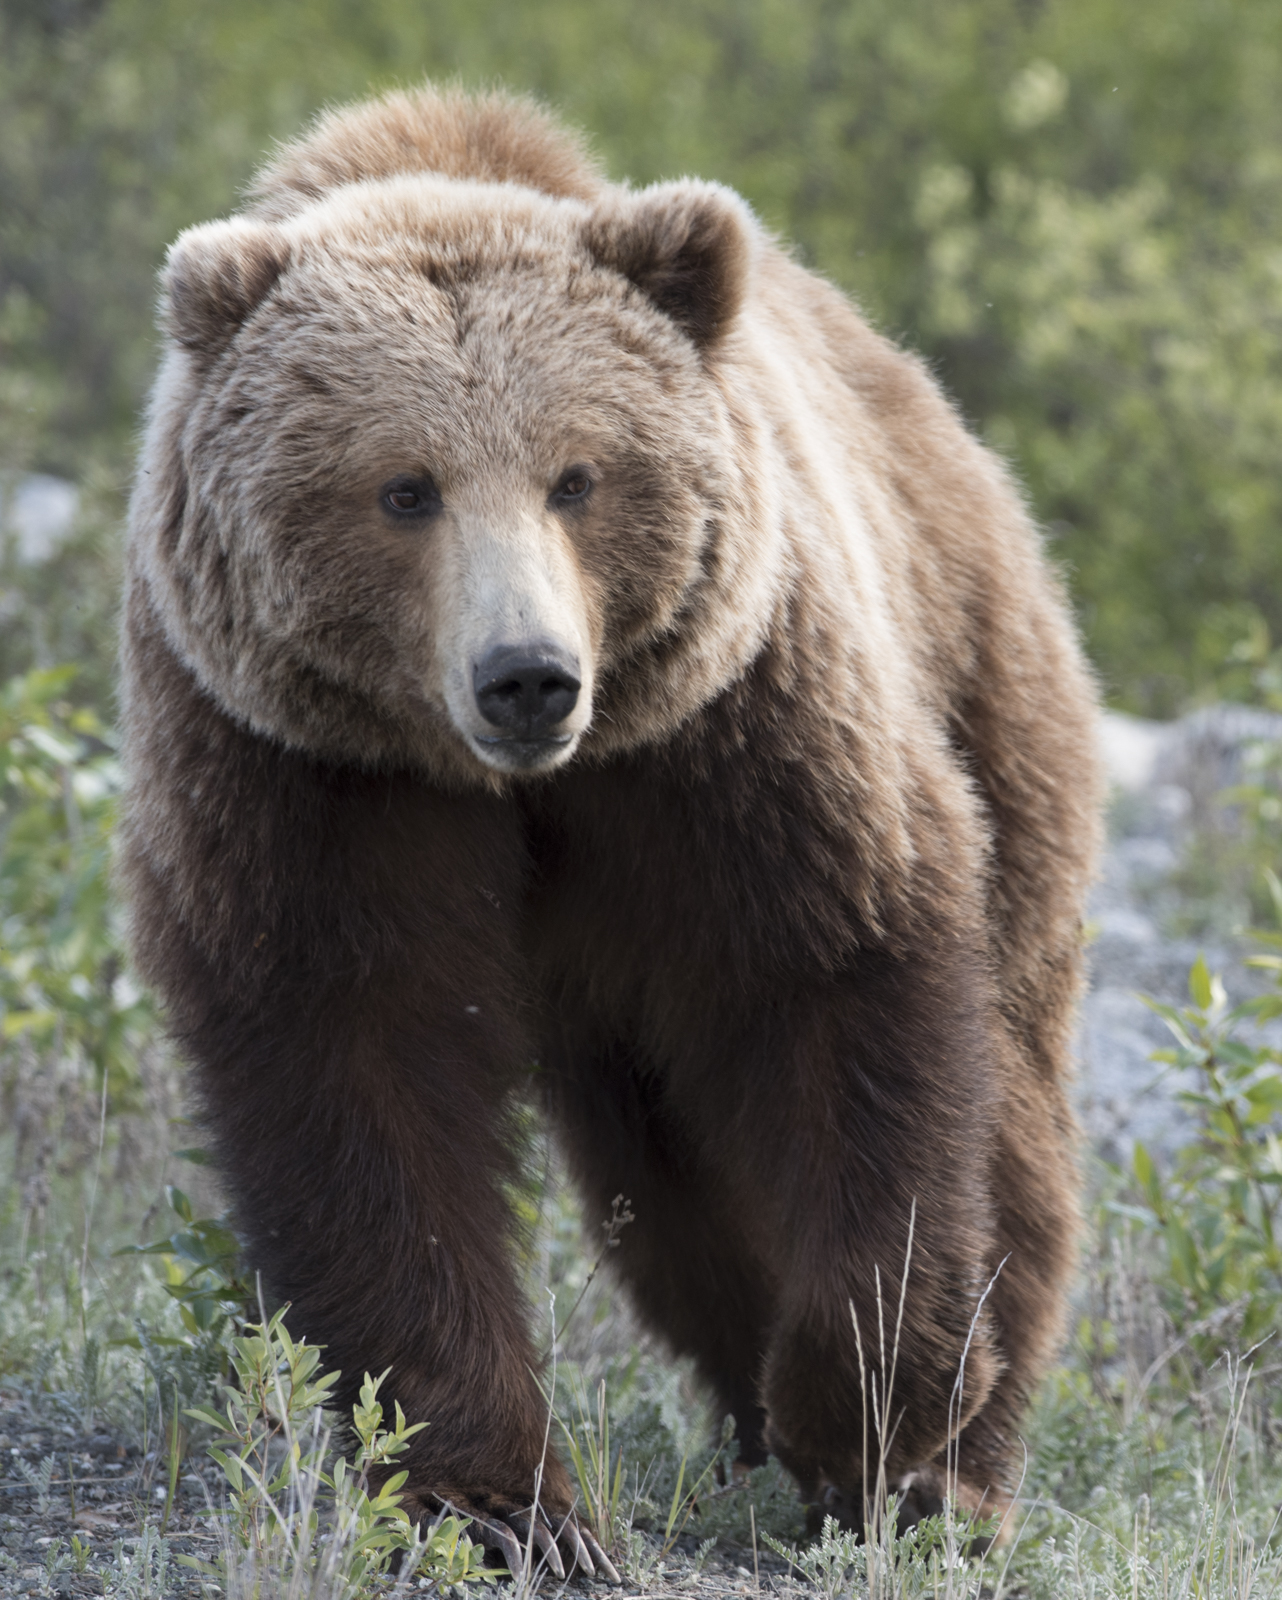 Grizzly Bear off the Alaskan Highway.